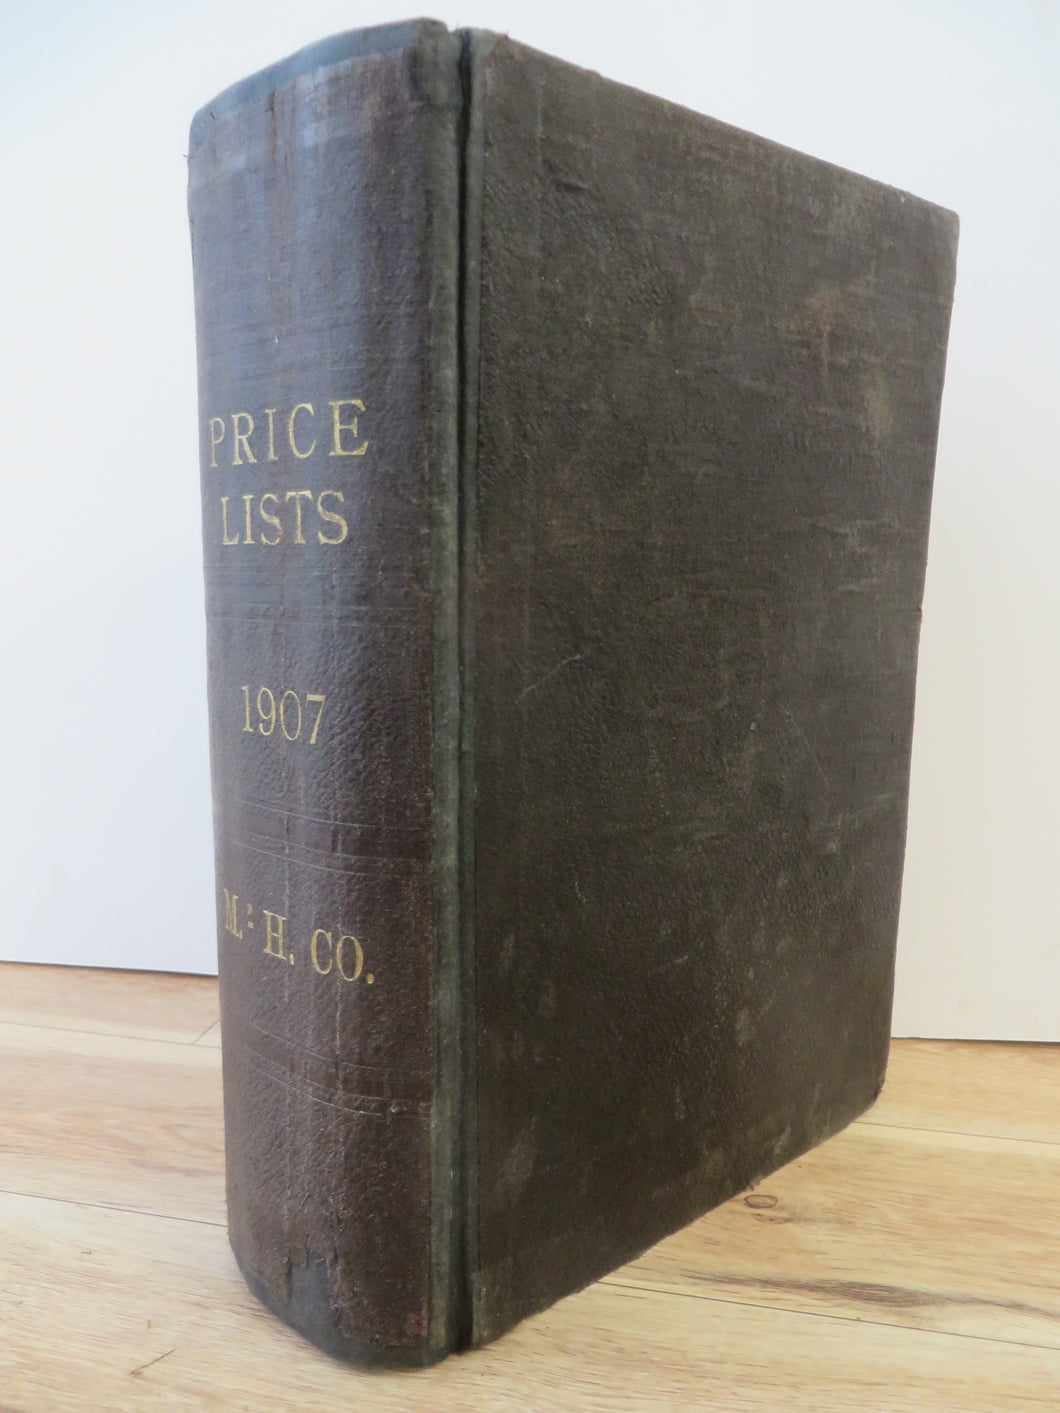 Massey-Harris duplicate part price Lists